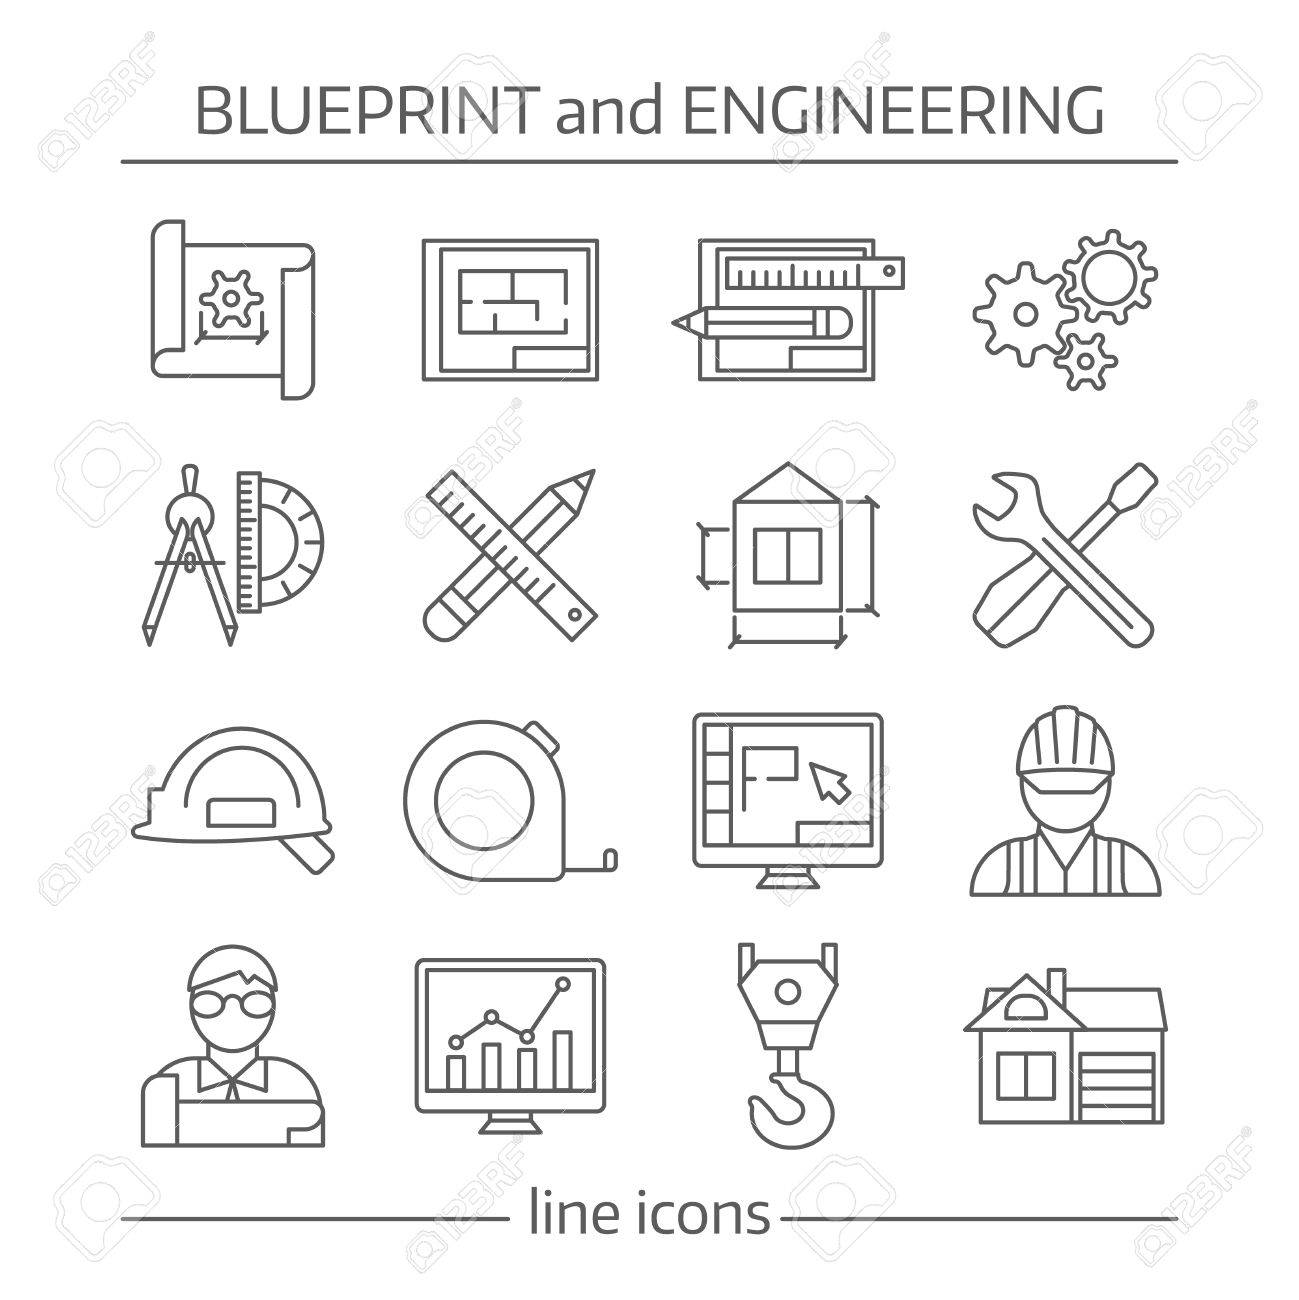 Blueprint and engineering linear icons set with gears computer blueprint and engineering linear icons set with gears computer programs crane tools drafts schemes isolated vector malvernweather Images